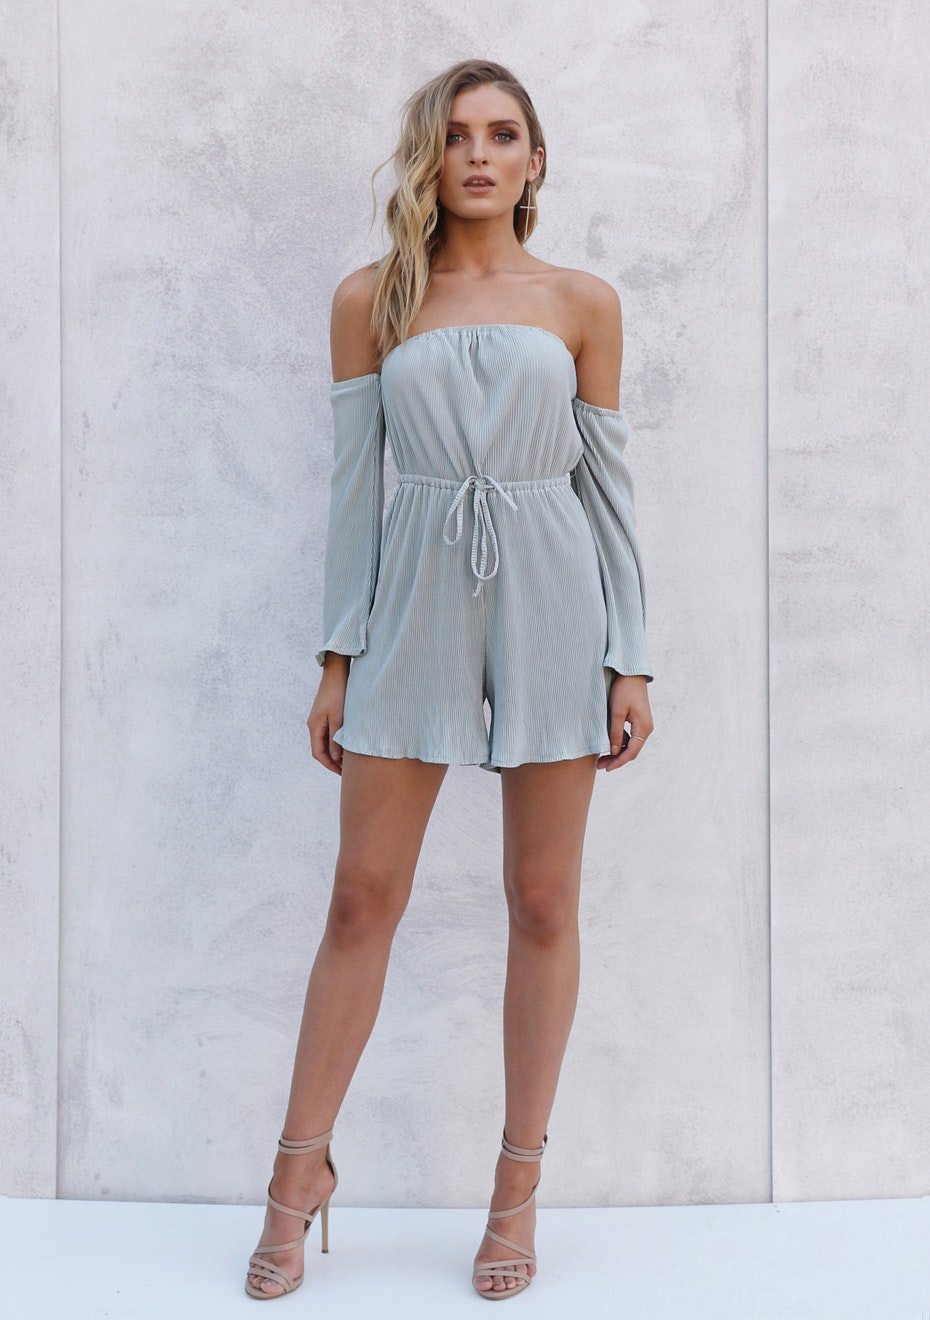 Madison - ANNABELLE PLAYSUIT - SAGE